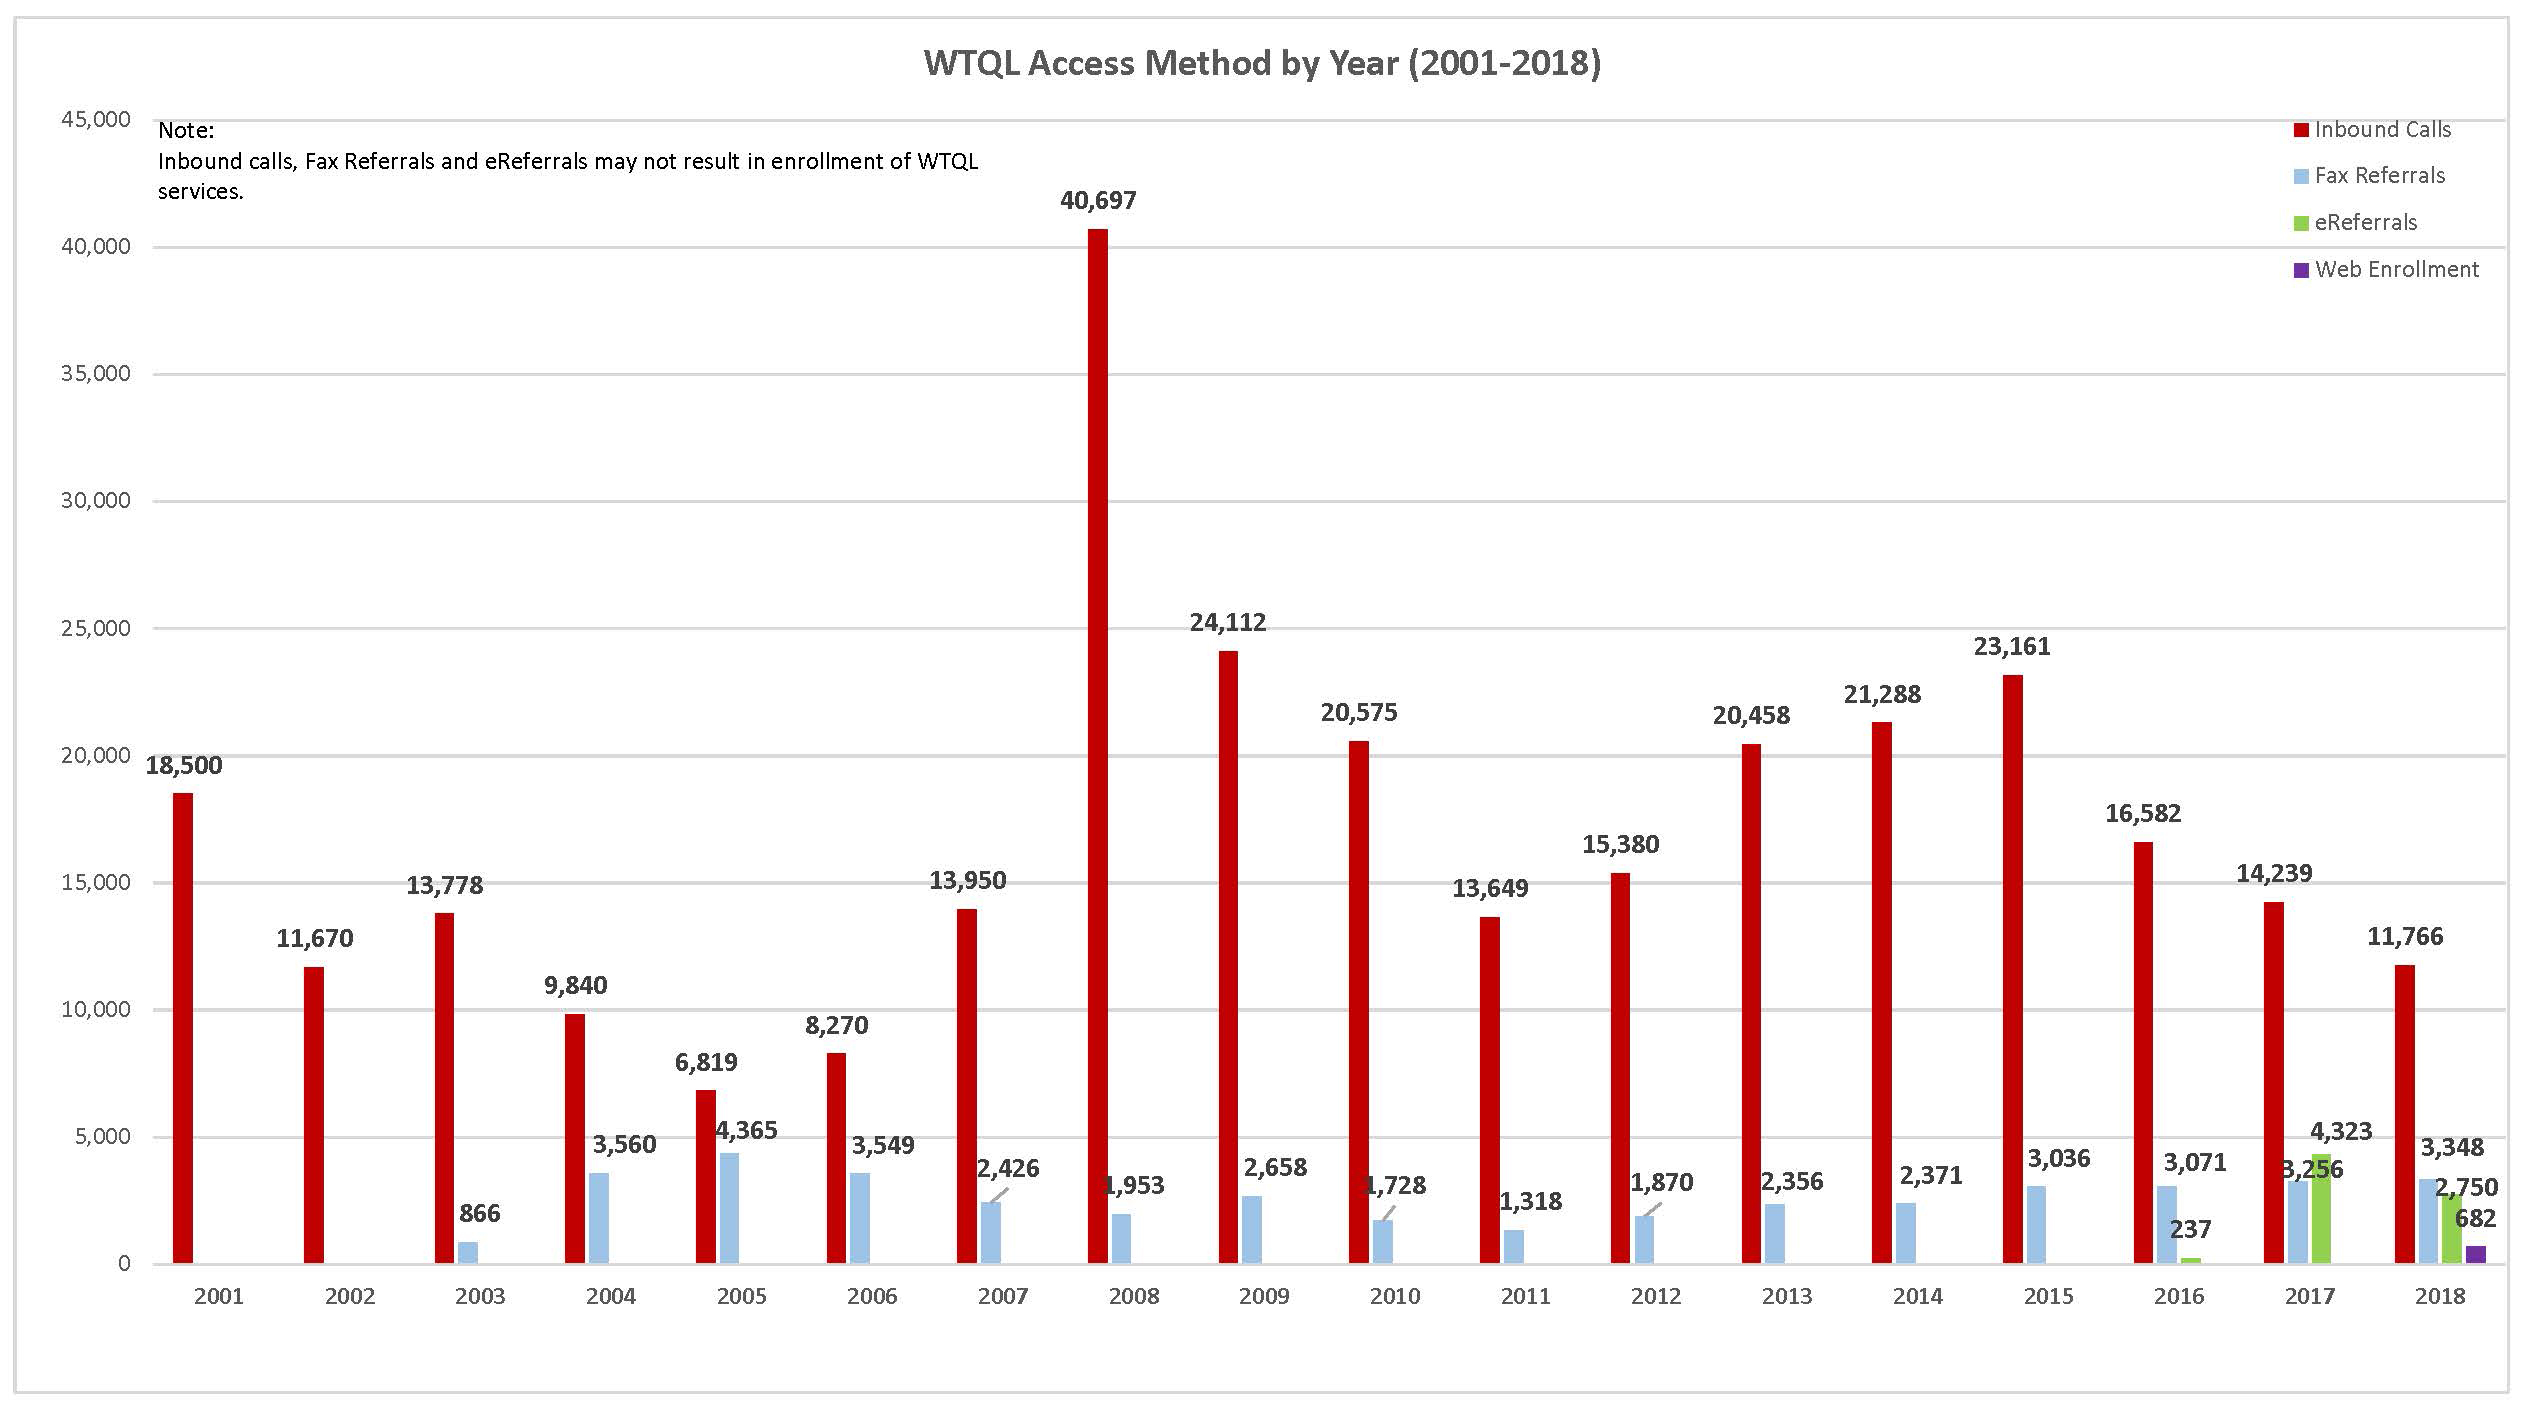 This chart depicts various ways tobacco users accessed the Quit Line by year. Click on the chart to see a larger version.